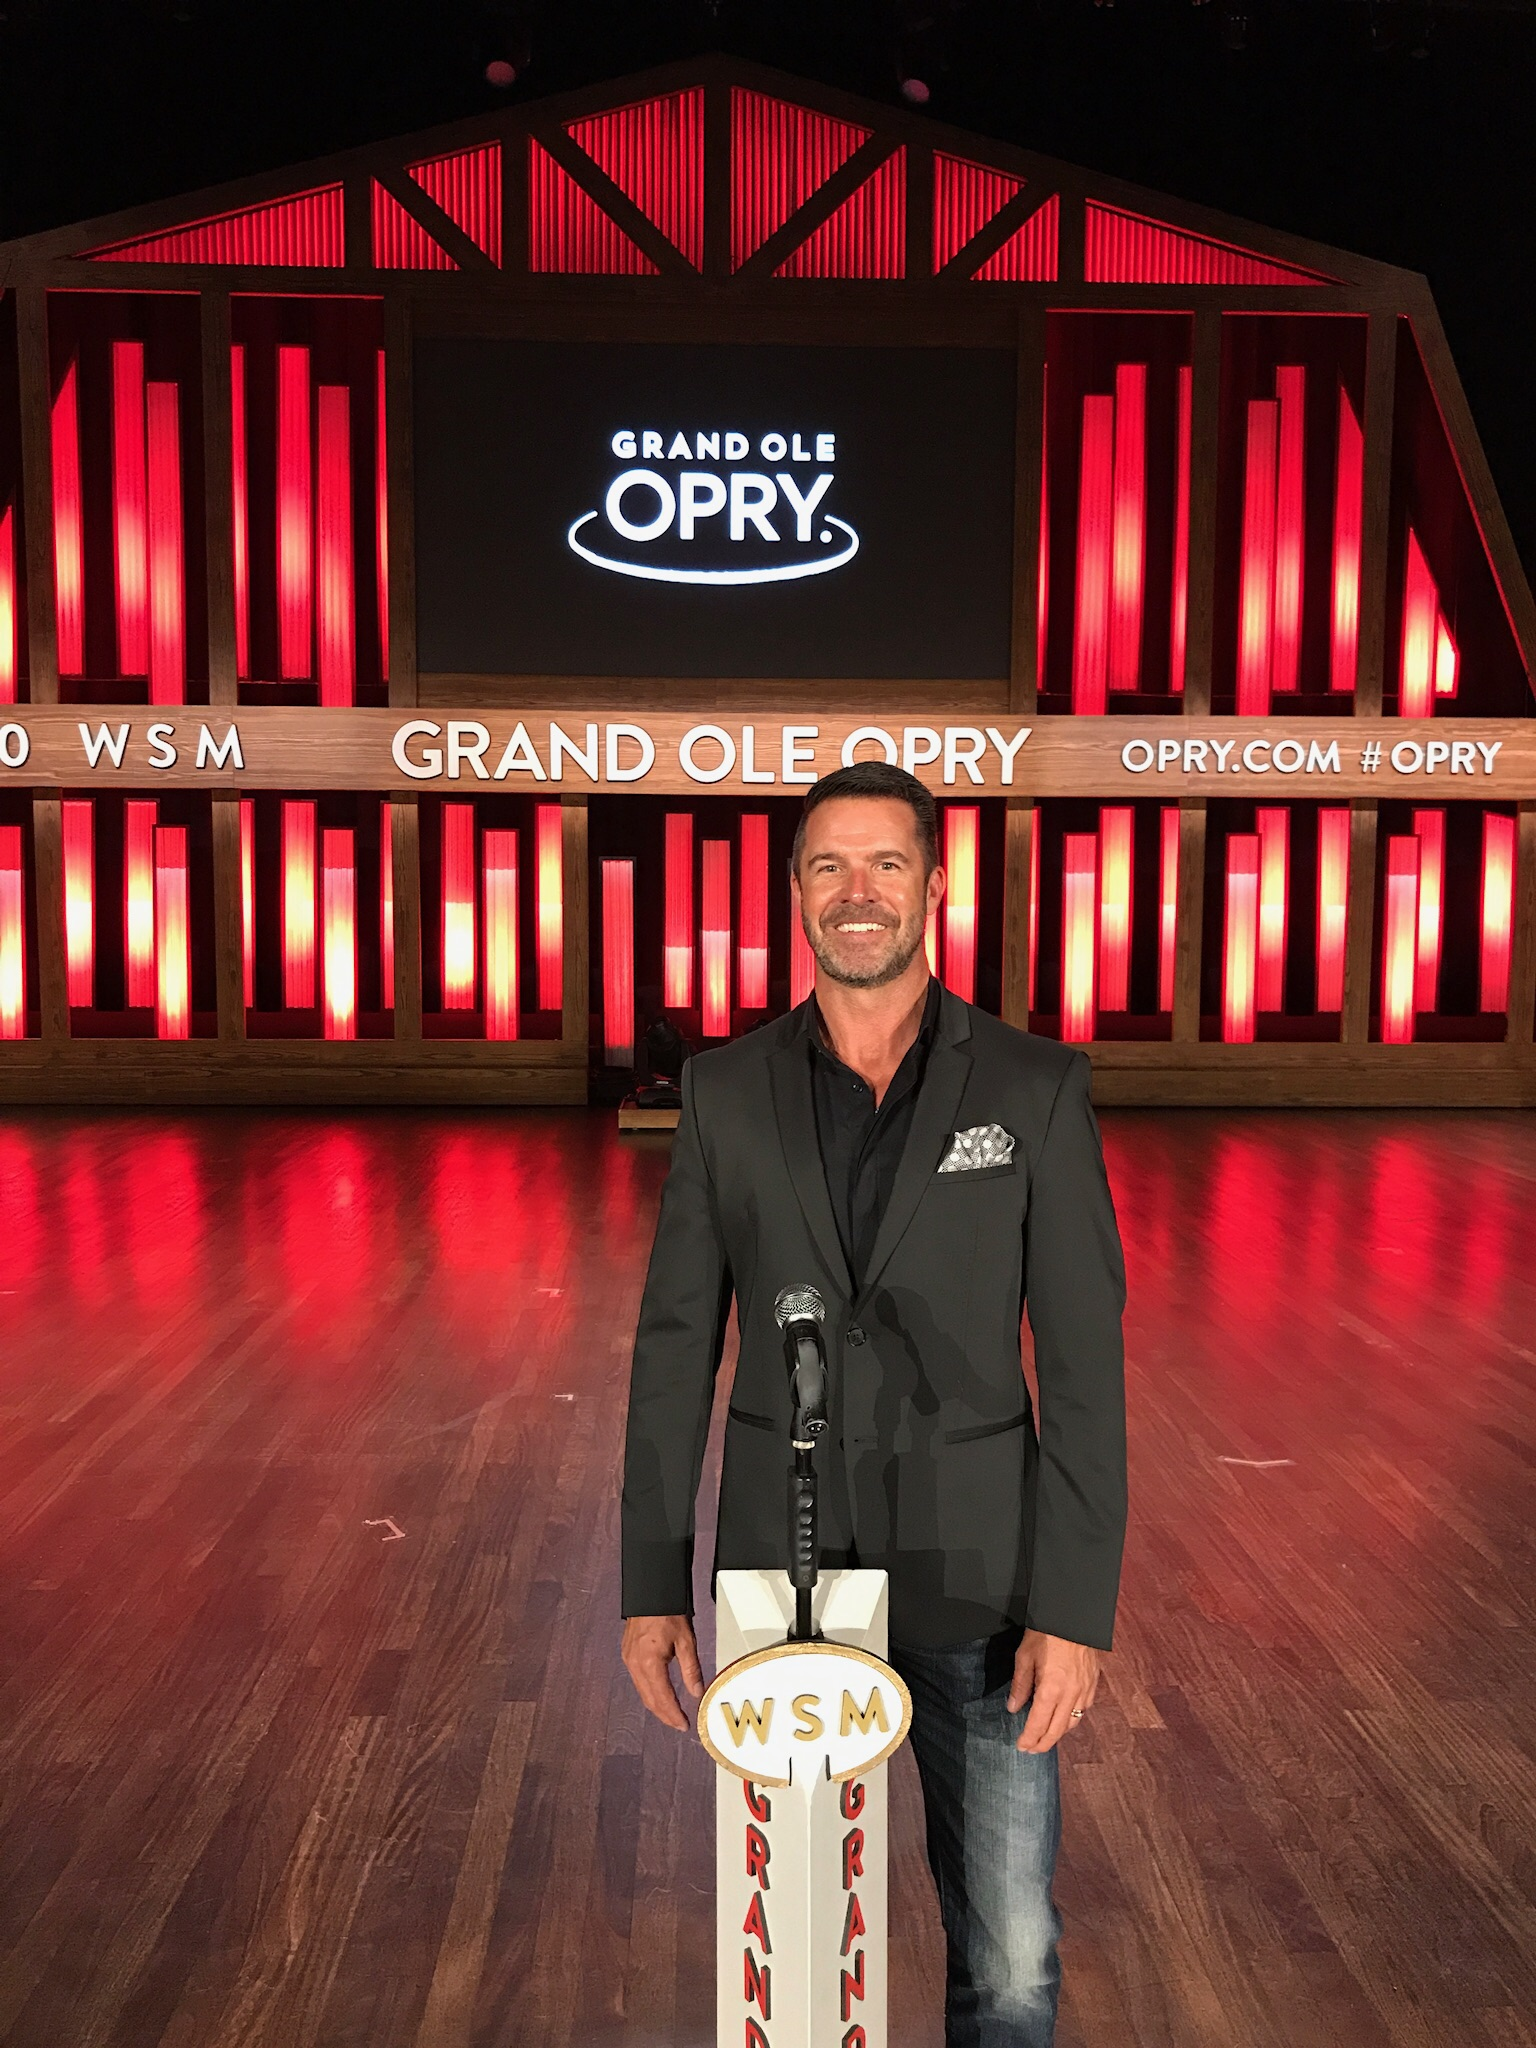 John Behling, CMO of Opry Entertainment Group